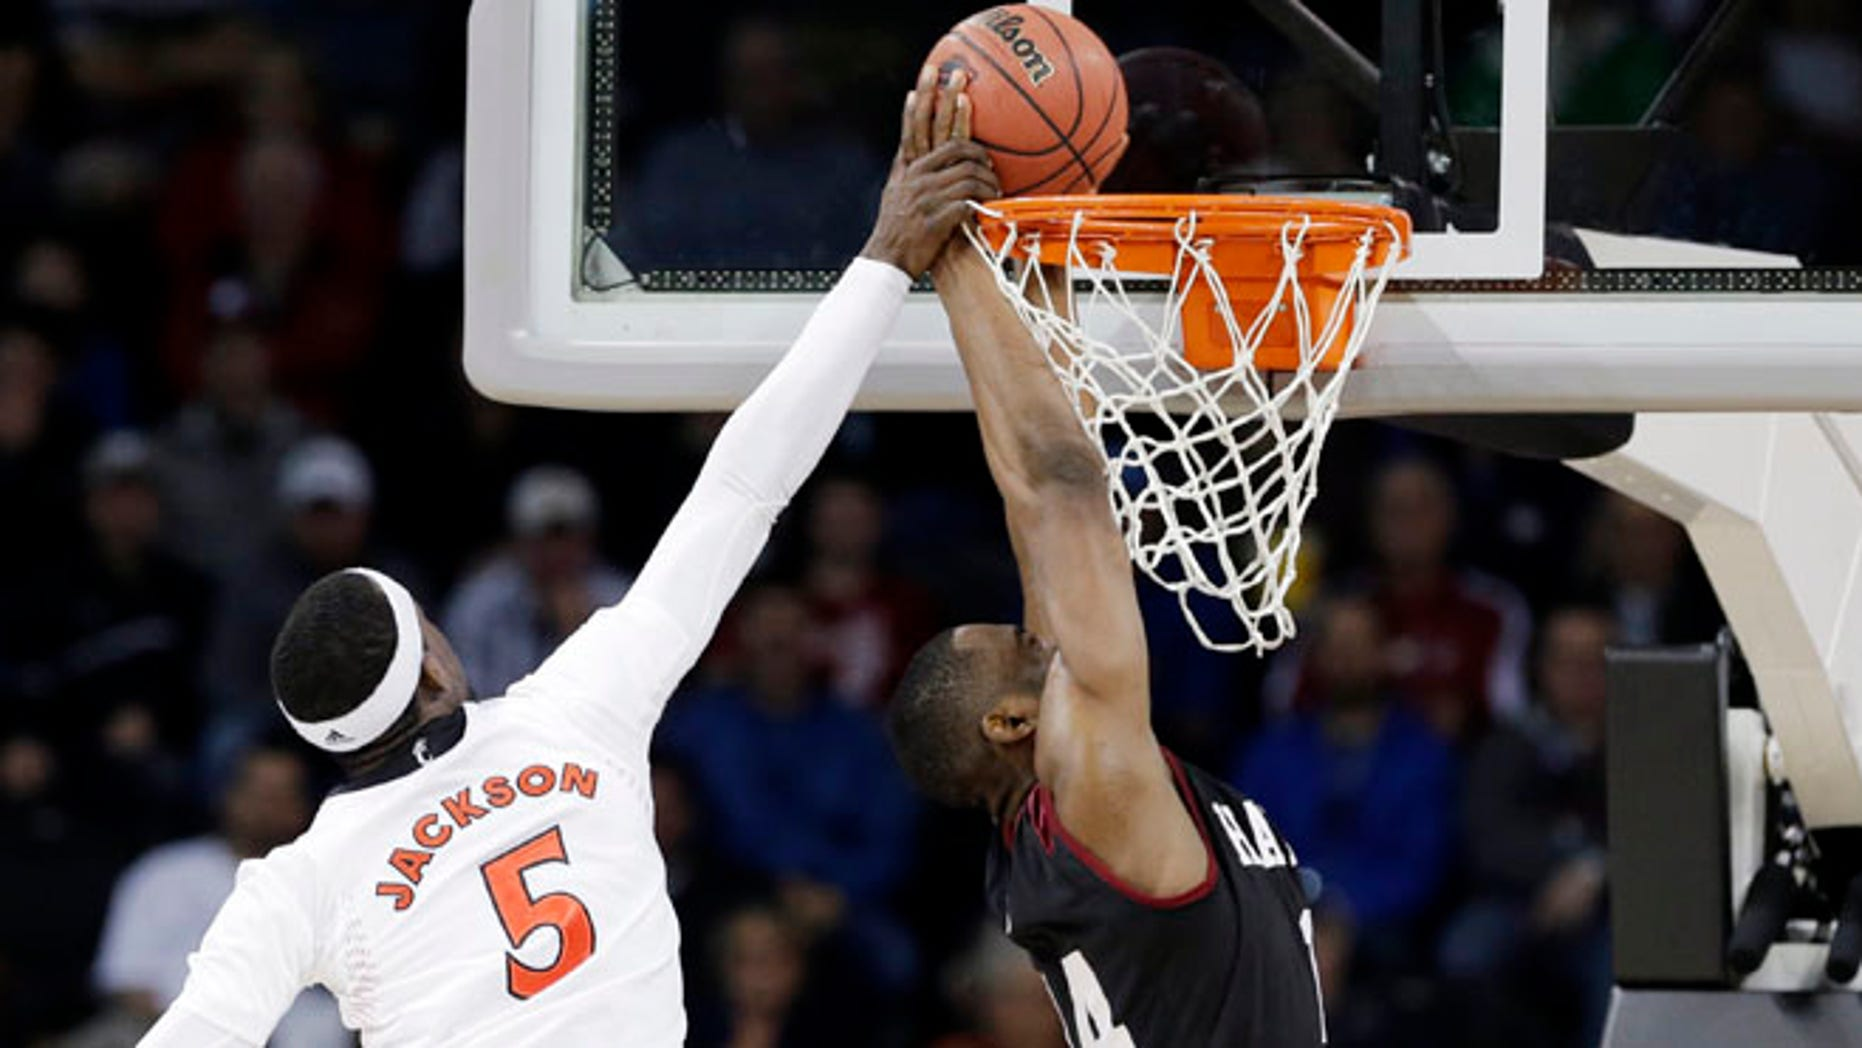 Mar. 20, 2014: Cincinnati's Justin Jackson (5) tries to stop a shot by Harvard's Steve Moundou-Missi in the first half during a second-round game of the NCAA college basketball tournament in Spokane, Wash.